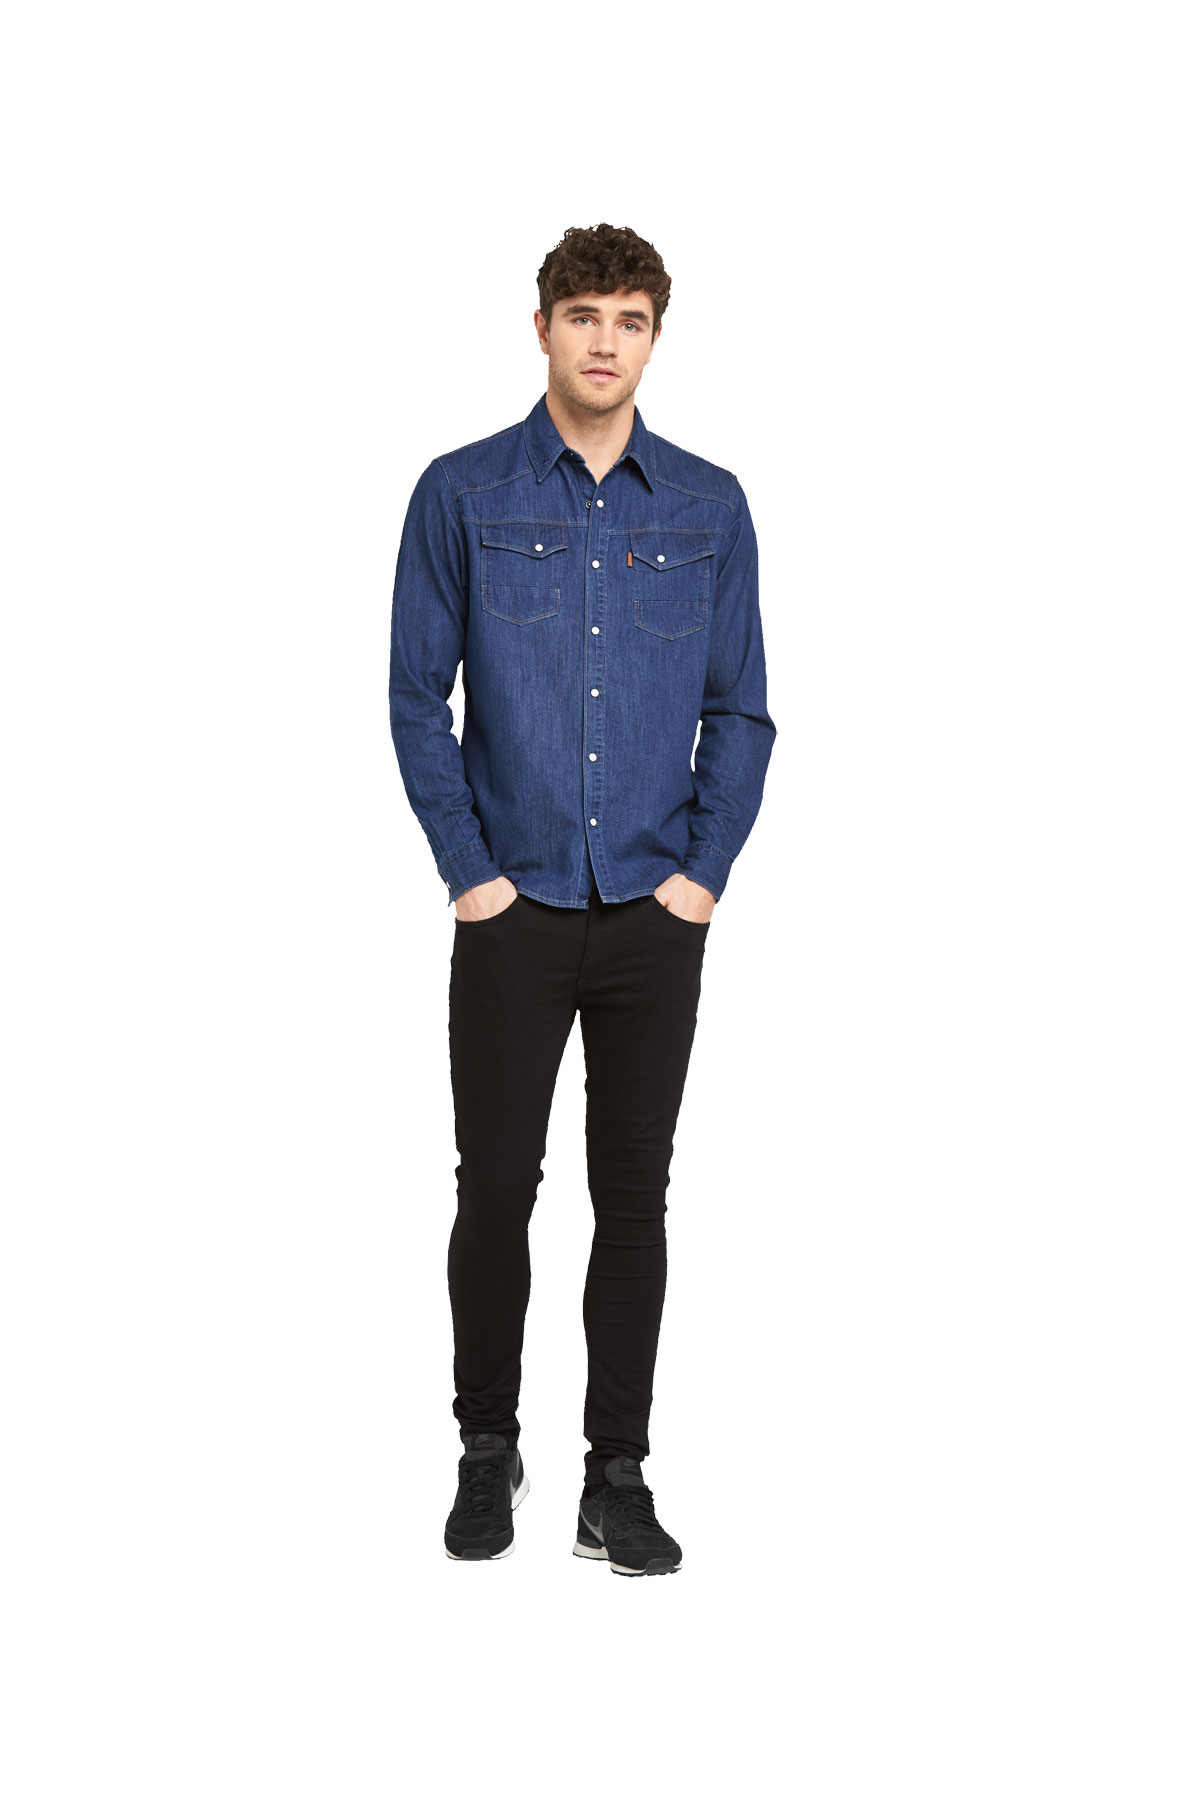 883 Police Bronco Long Sleeved Denim Shirt